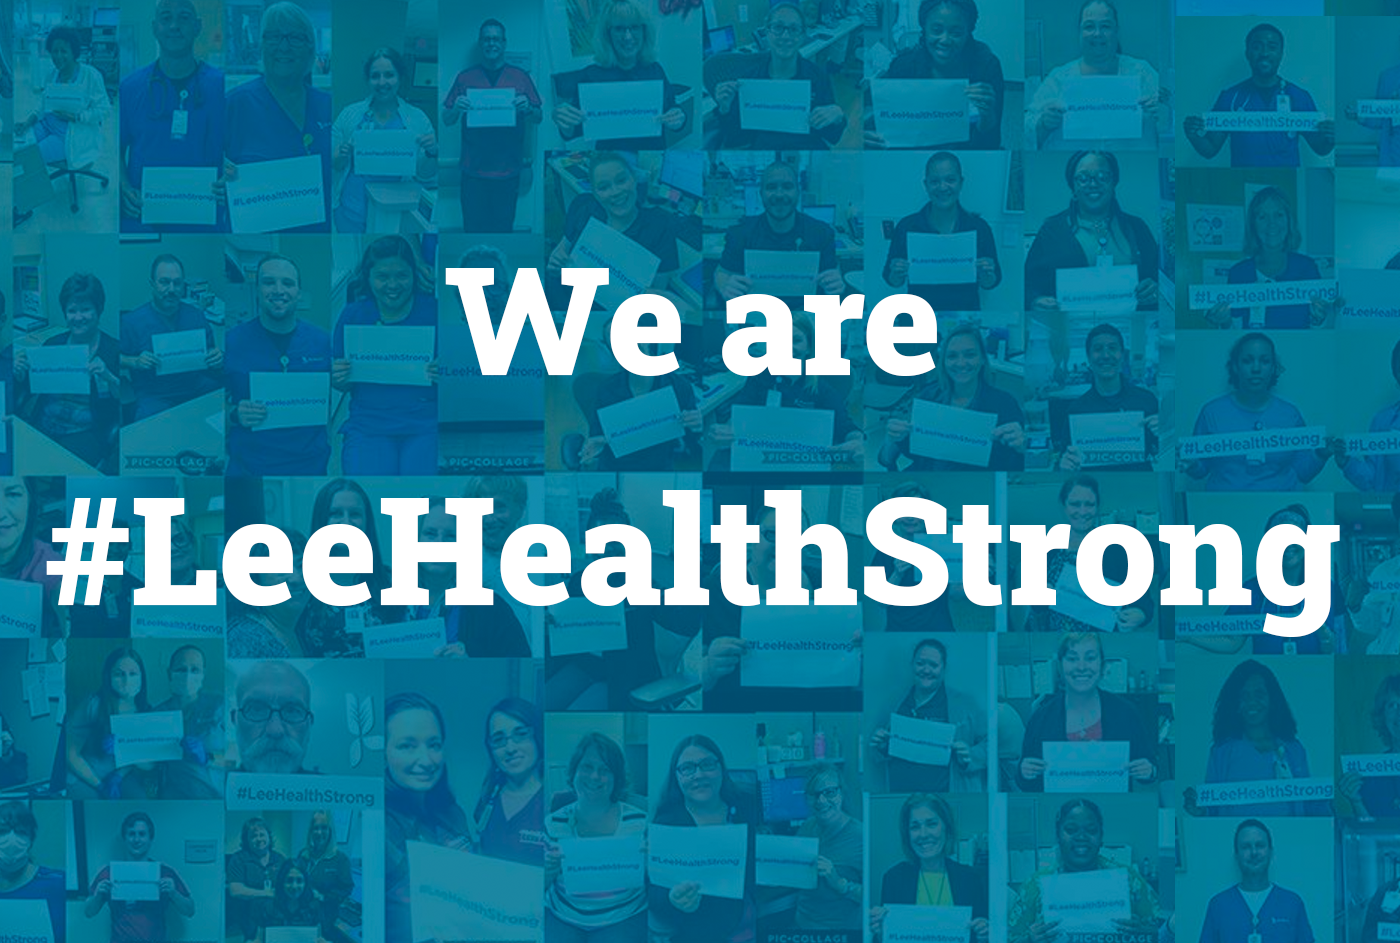 Lee Health Strong